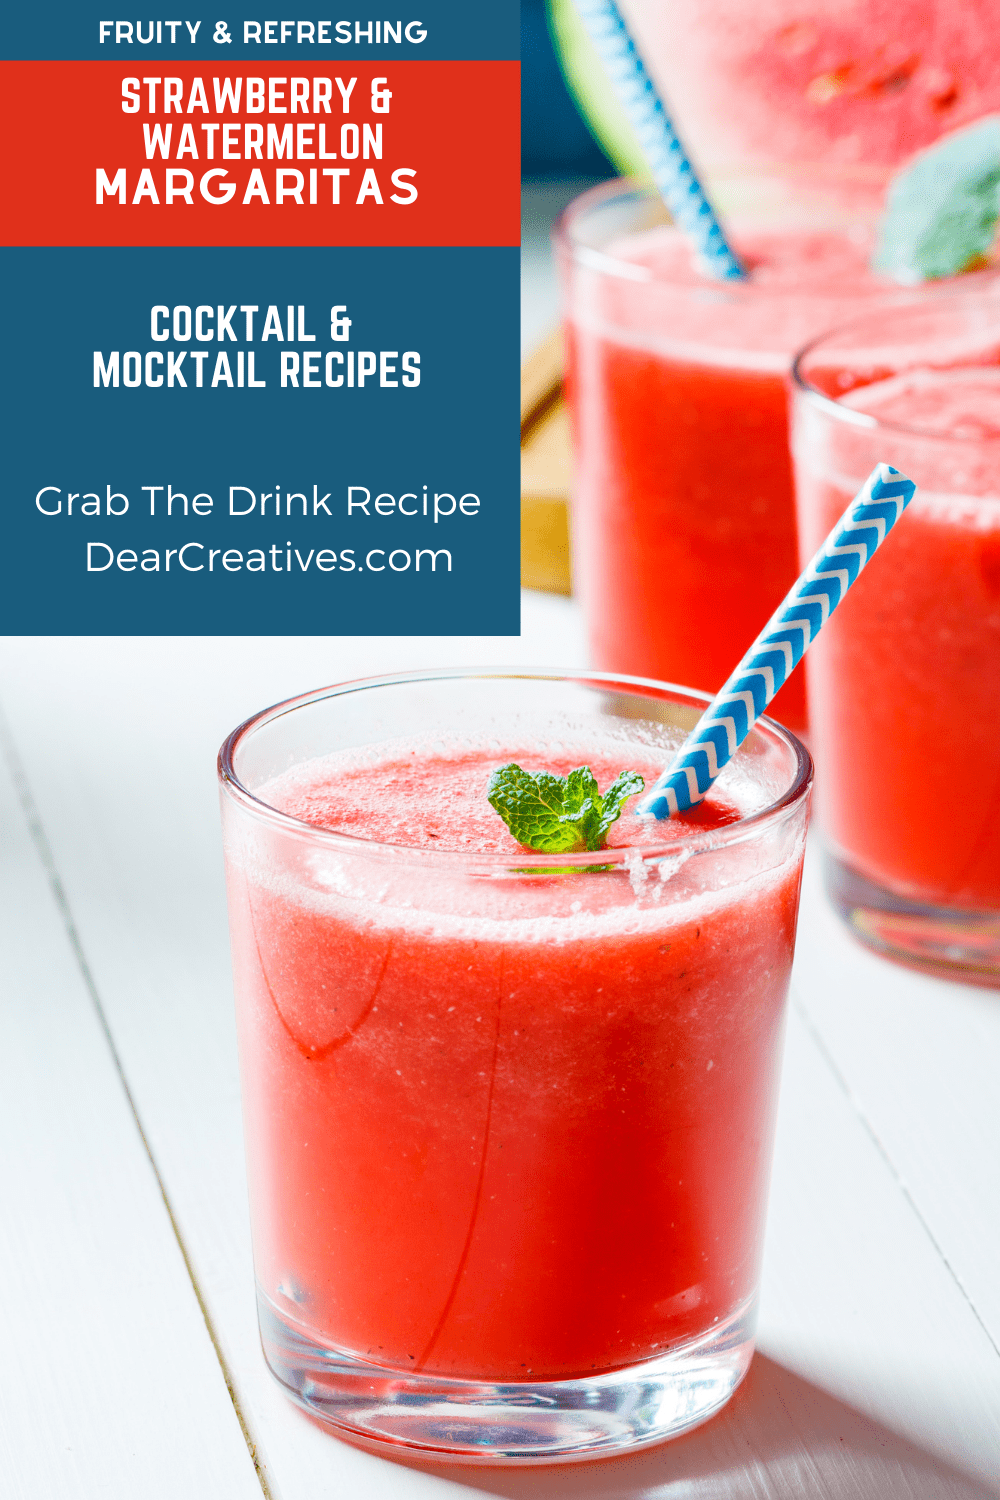 Strawberry Watermelon Margaritas – Drink Recipe